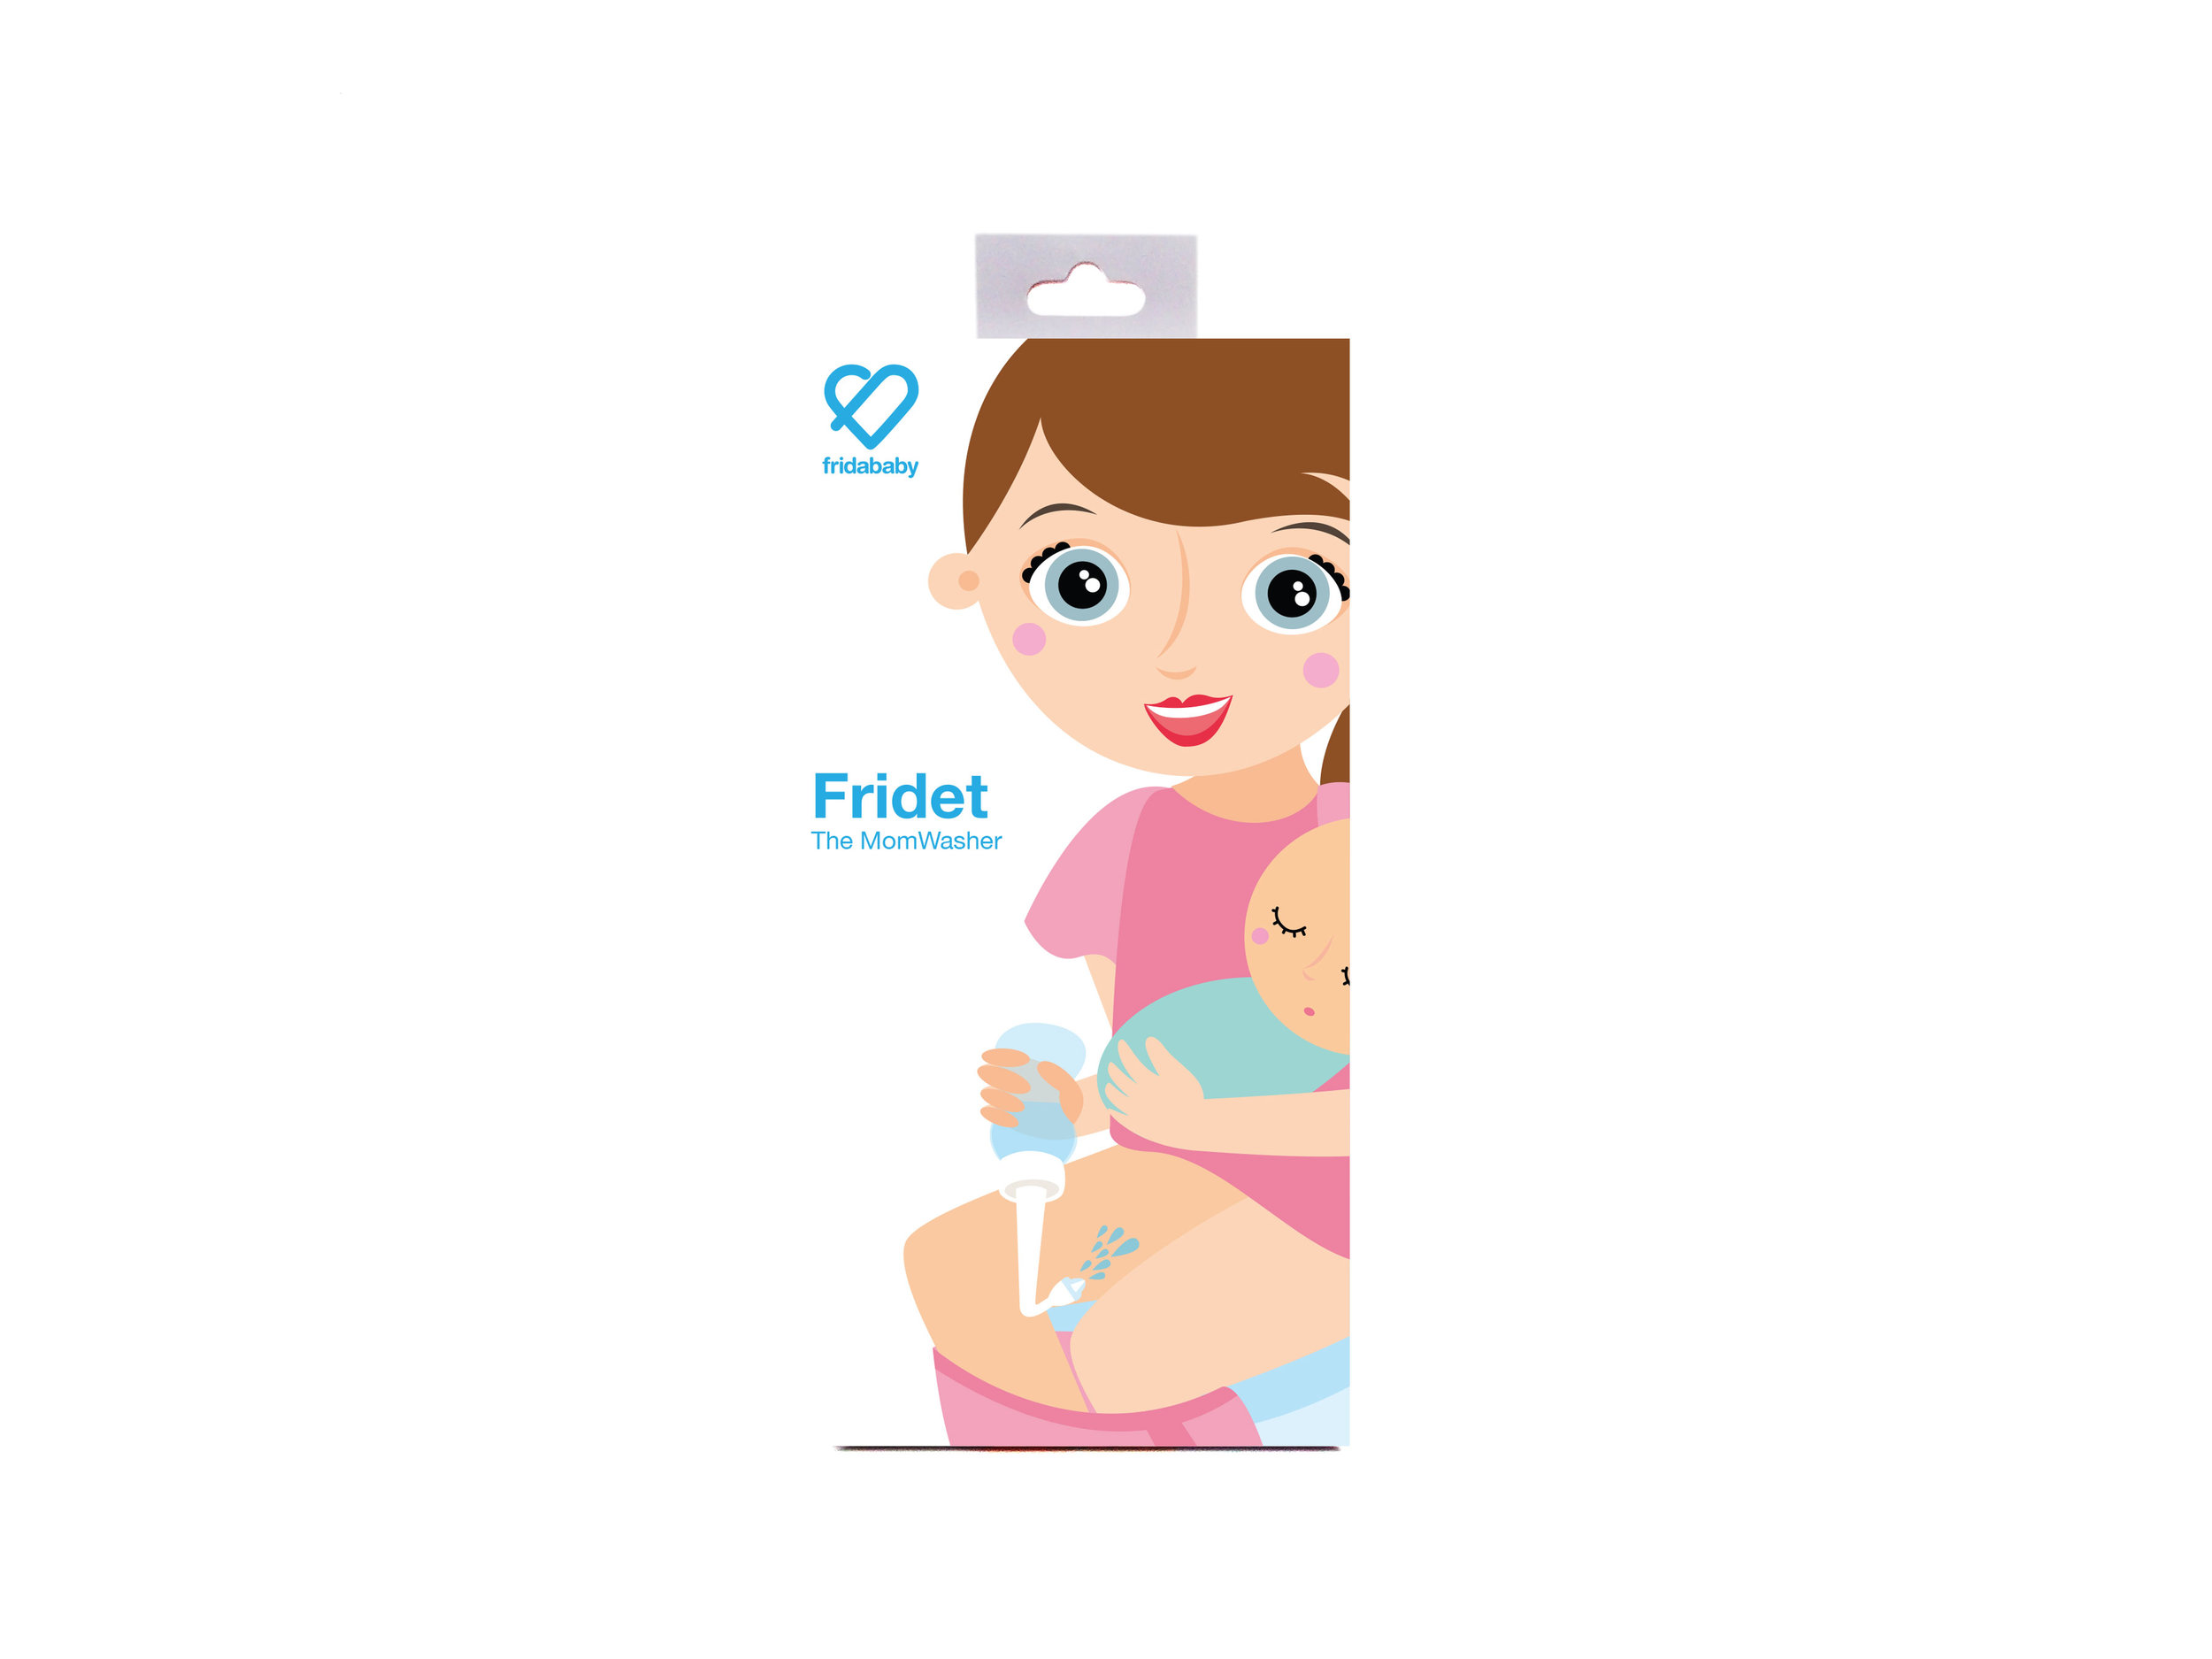 FridaBaby   Simple, portable, a little adorable, Fridet® the MomWasher is perfectly designed with new mom's in mind. It works upside down to make post-delivery healing process cleaner and easier. The bottle can also be filled with perineal healing solutions from All Things Jill and Lauren Mary. We carry the Fridet (and the Nose Frieda in our Cold and Flu section).